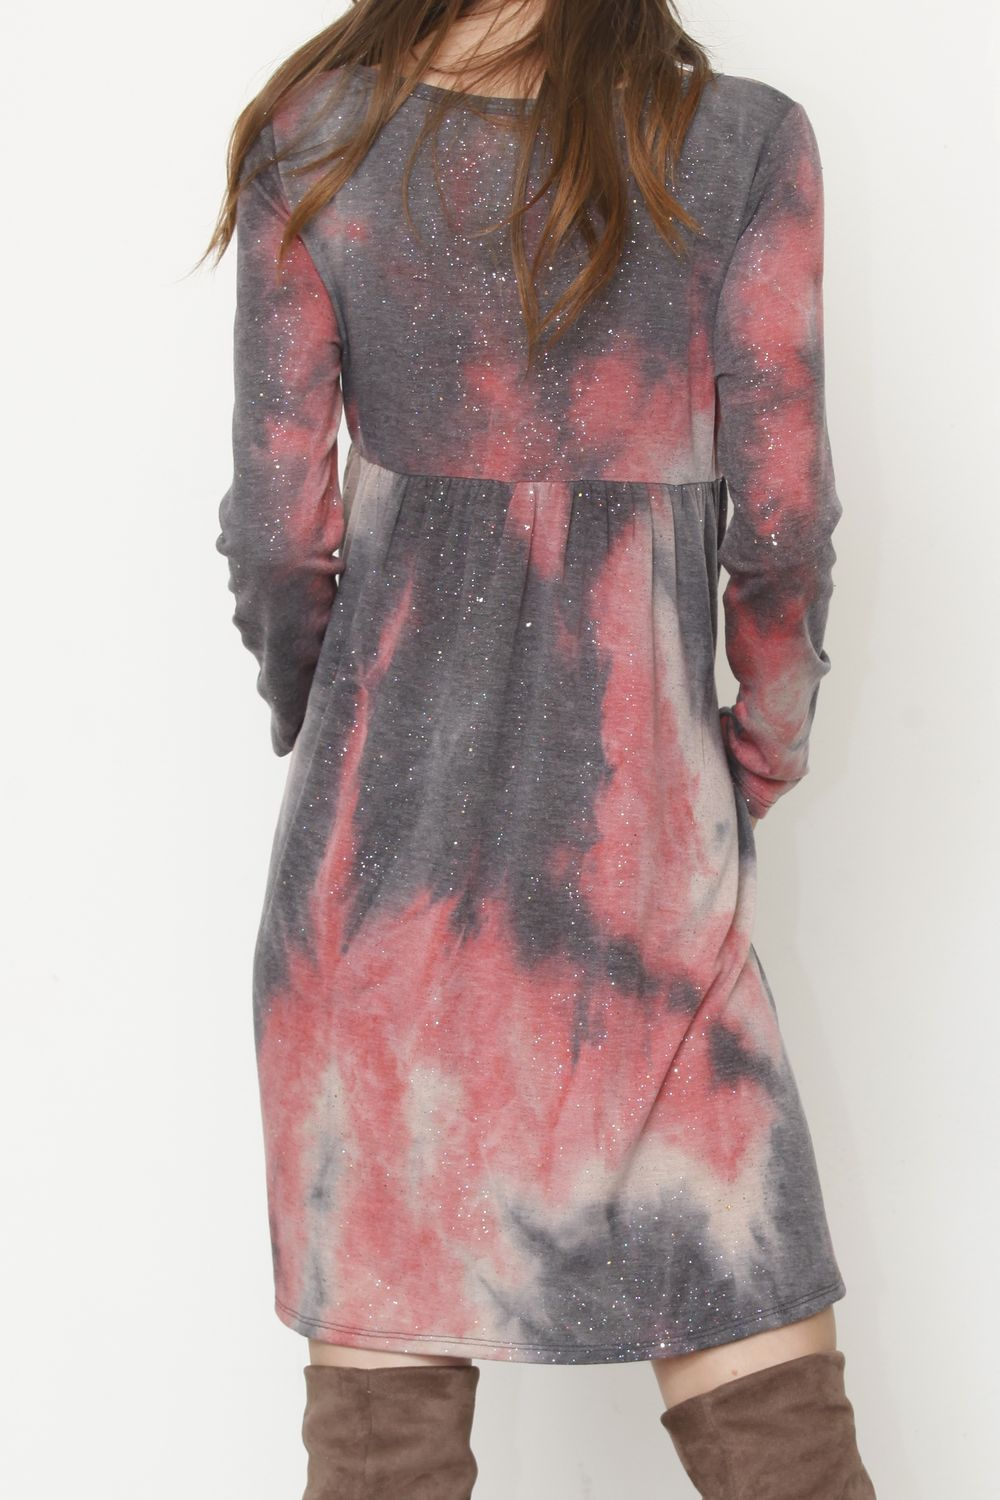 Galaxy Coral High Waist Tie-Dye Mini Dress